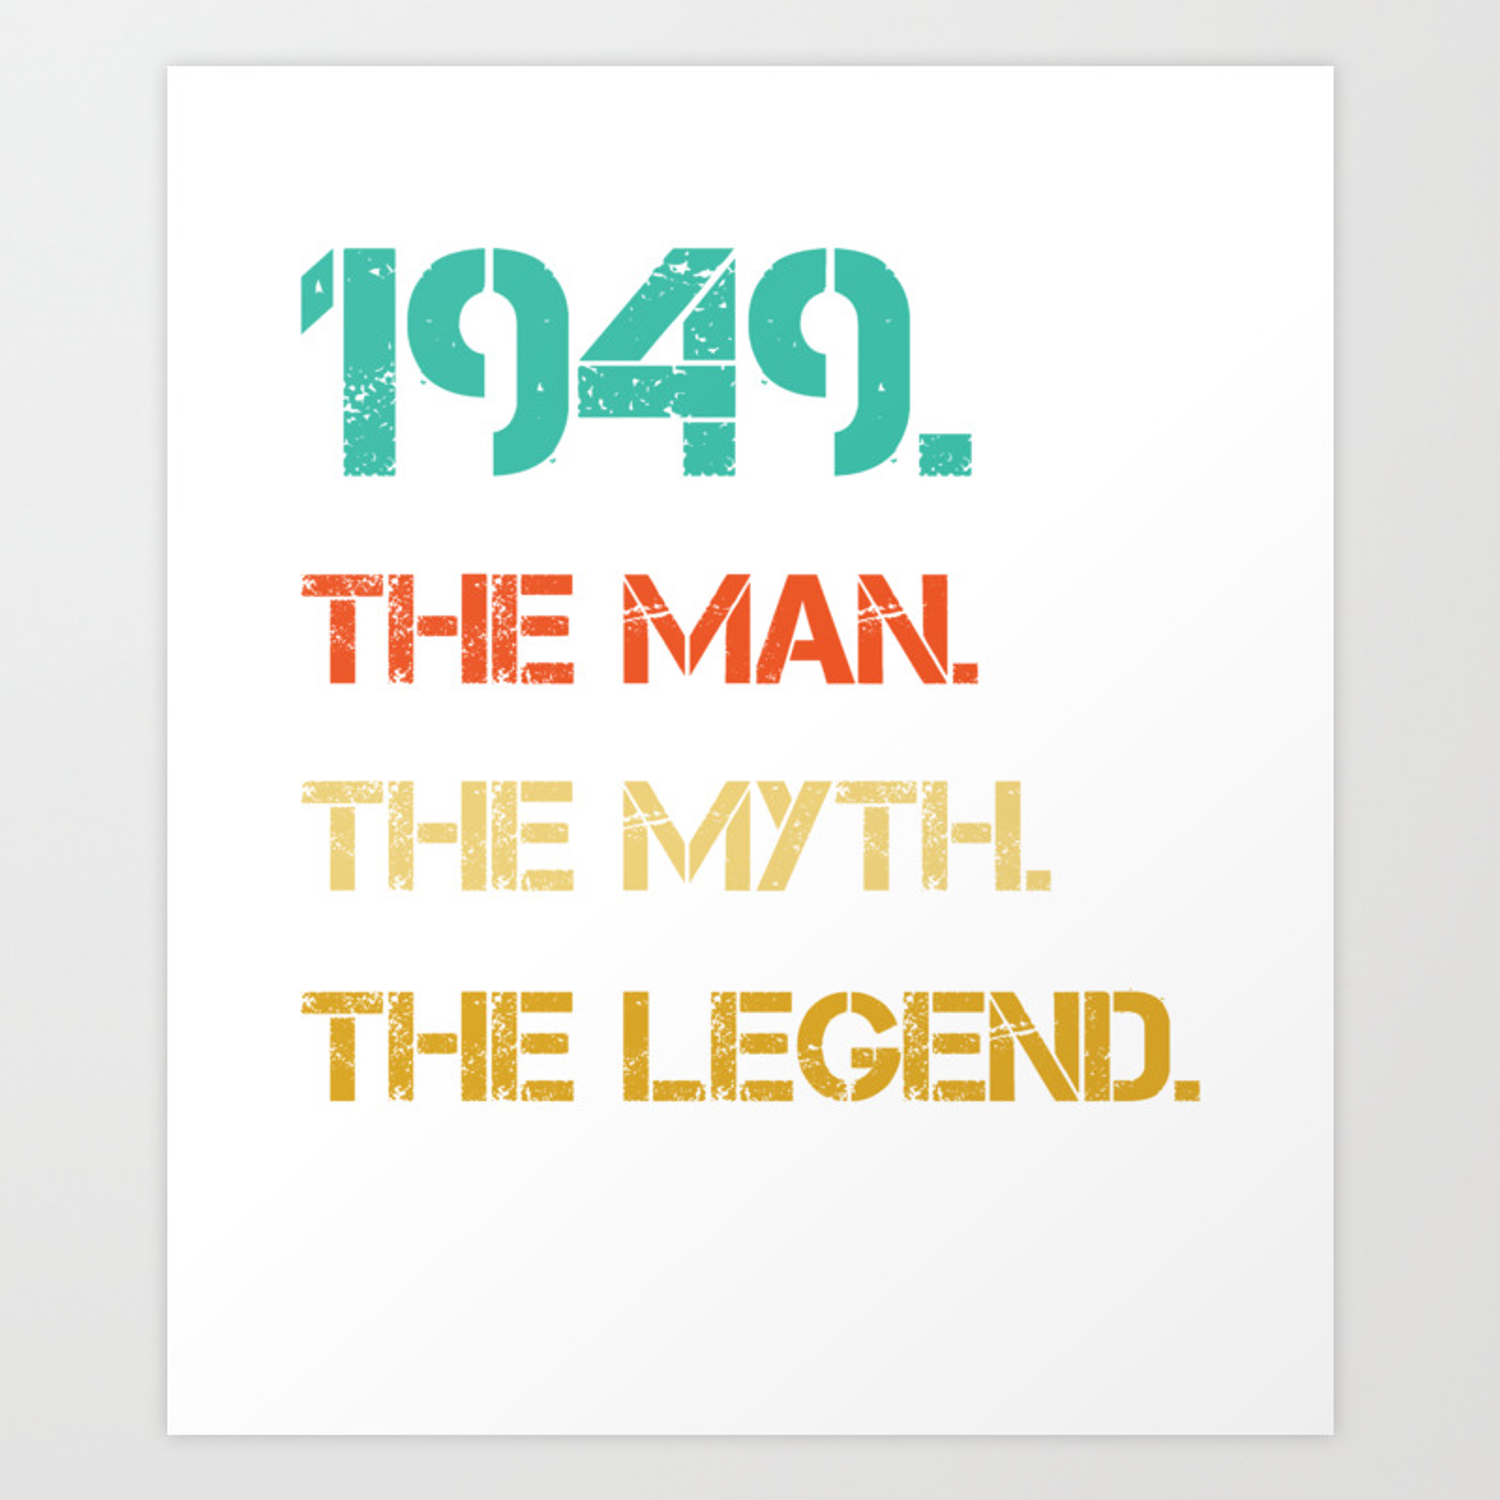 The Myth The Legend 1949 70th Birthday Gifts 70 Years Old Art